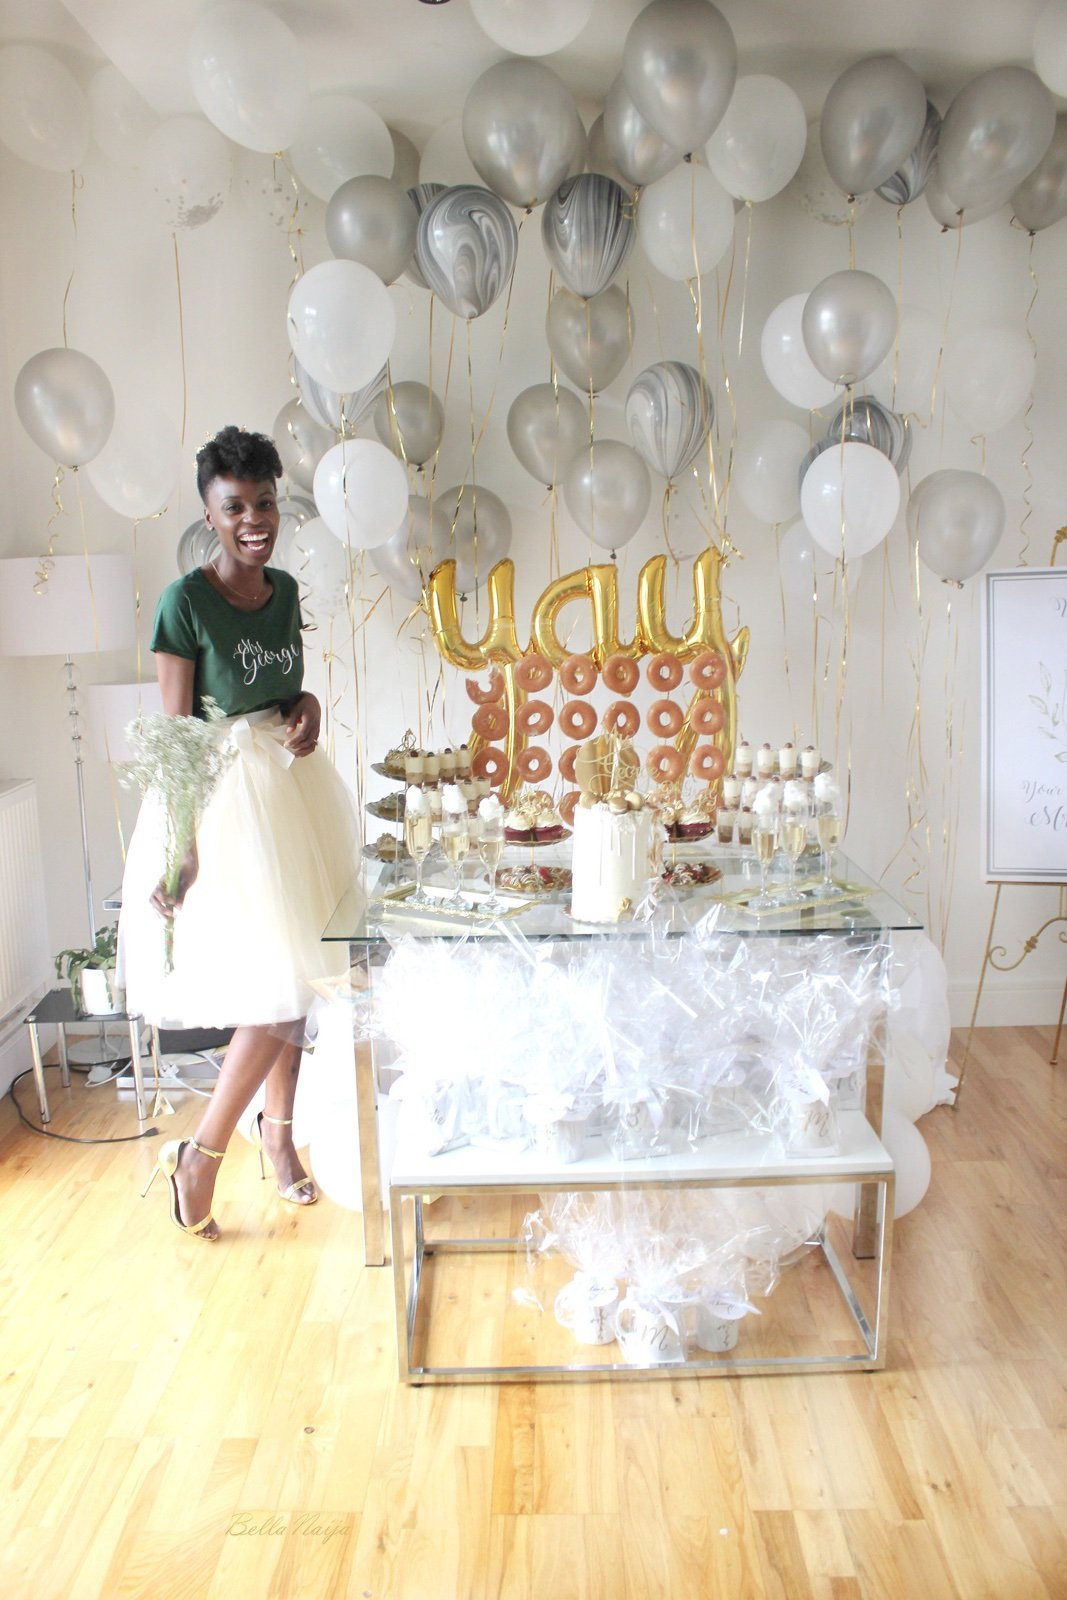 her best friend and business partner planned a surprise bridal shower for her which